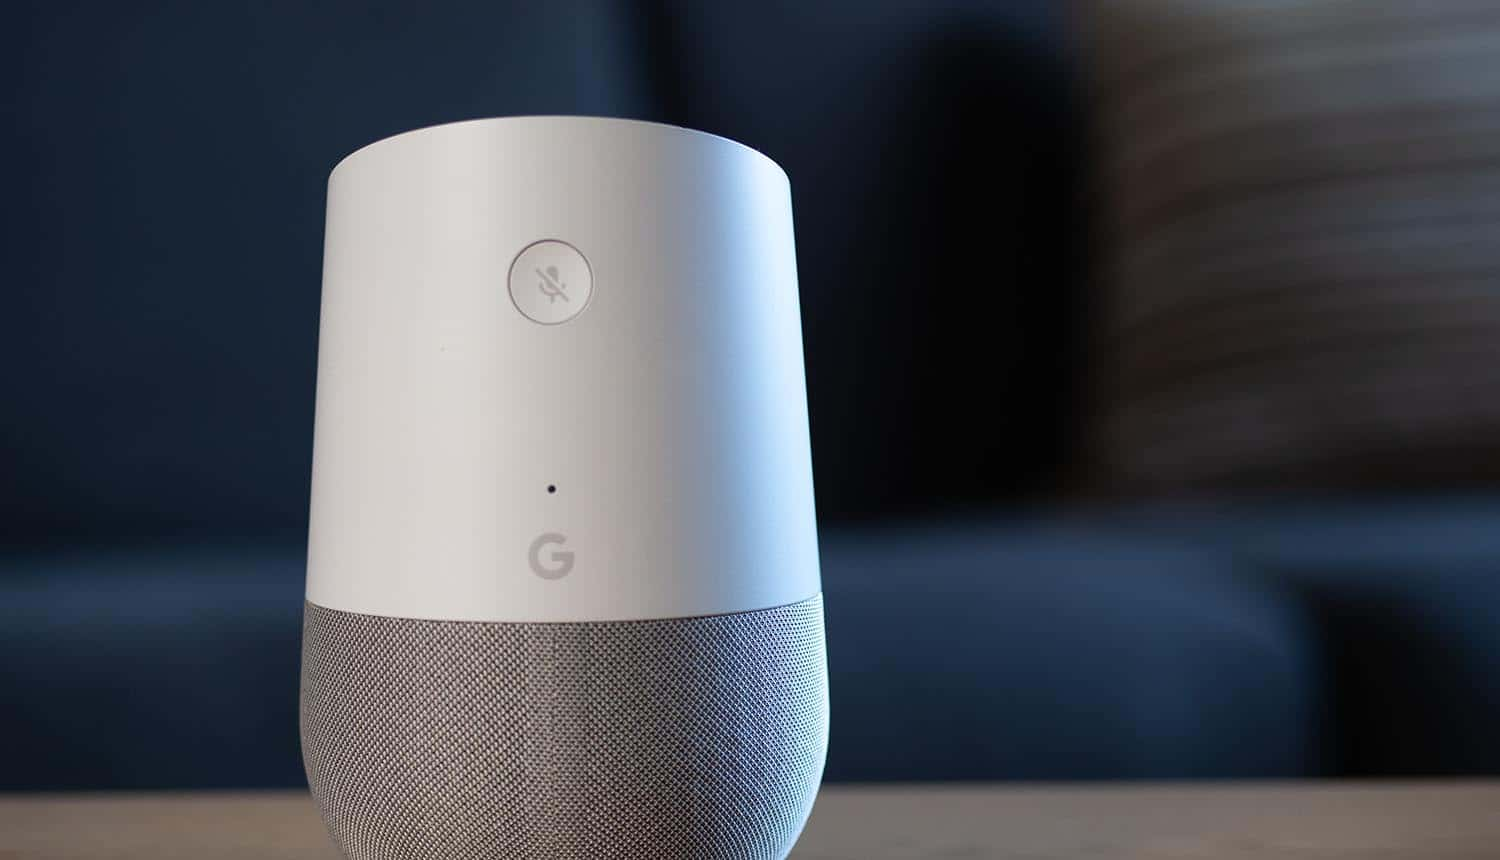 Google Home smart speaker in home environment